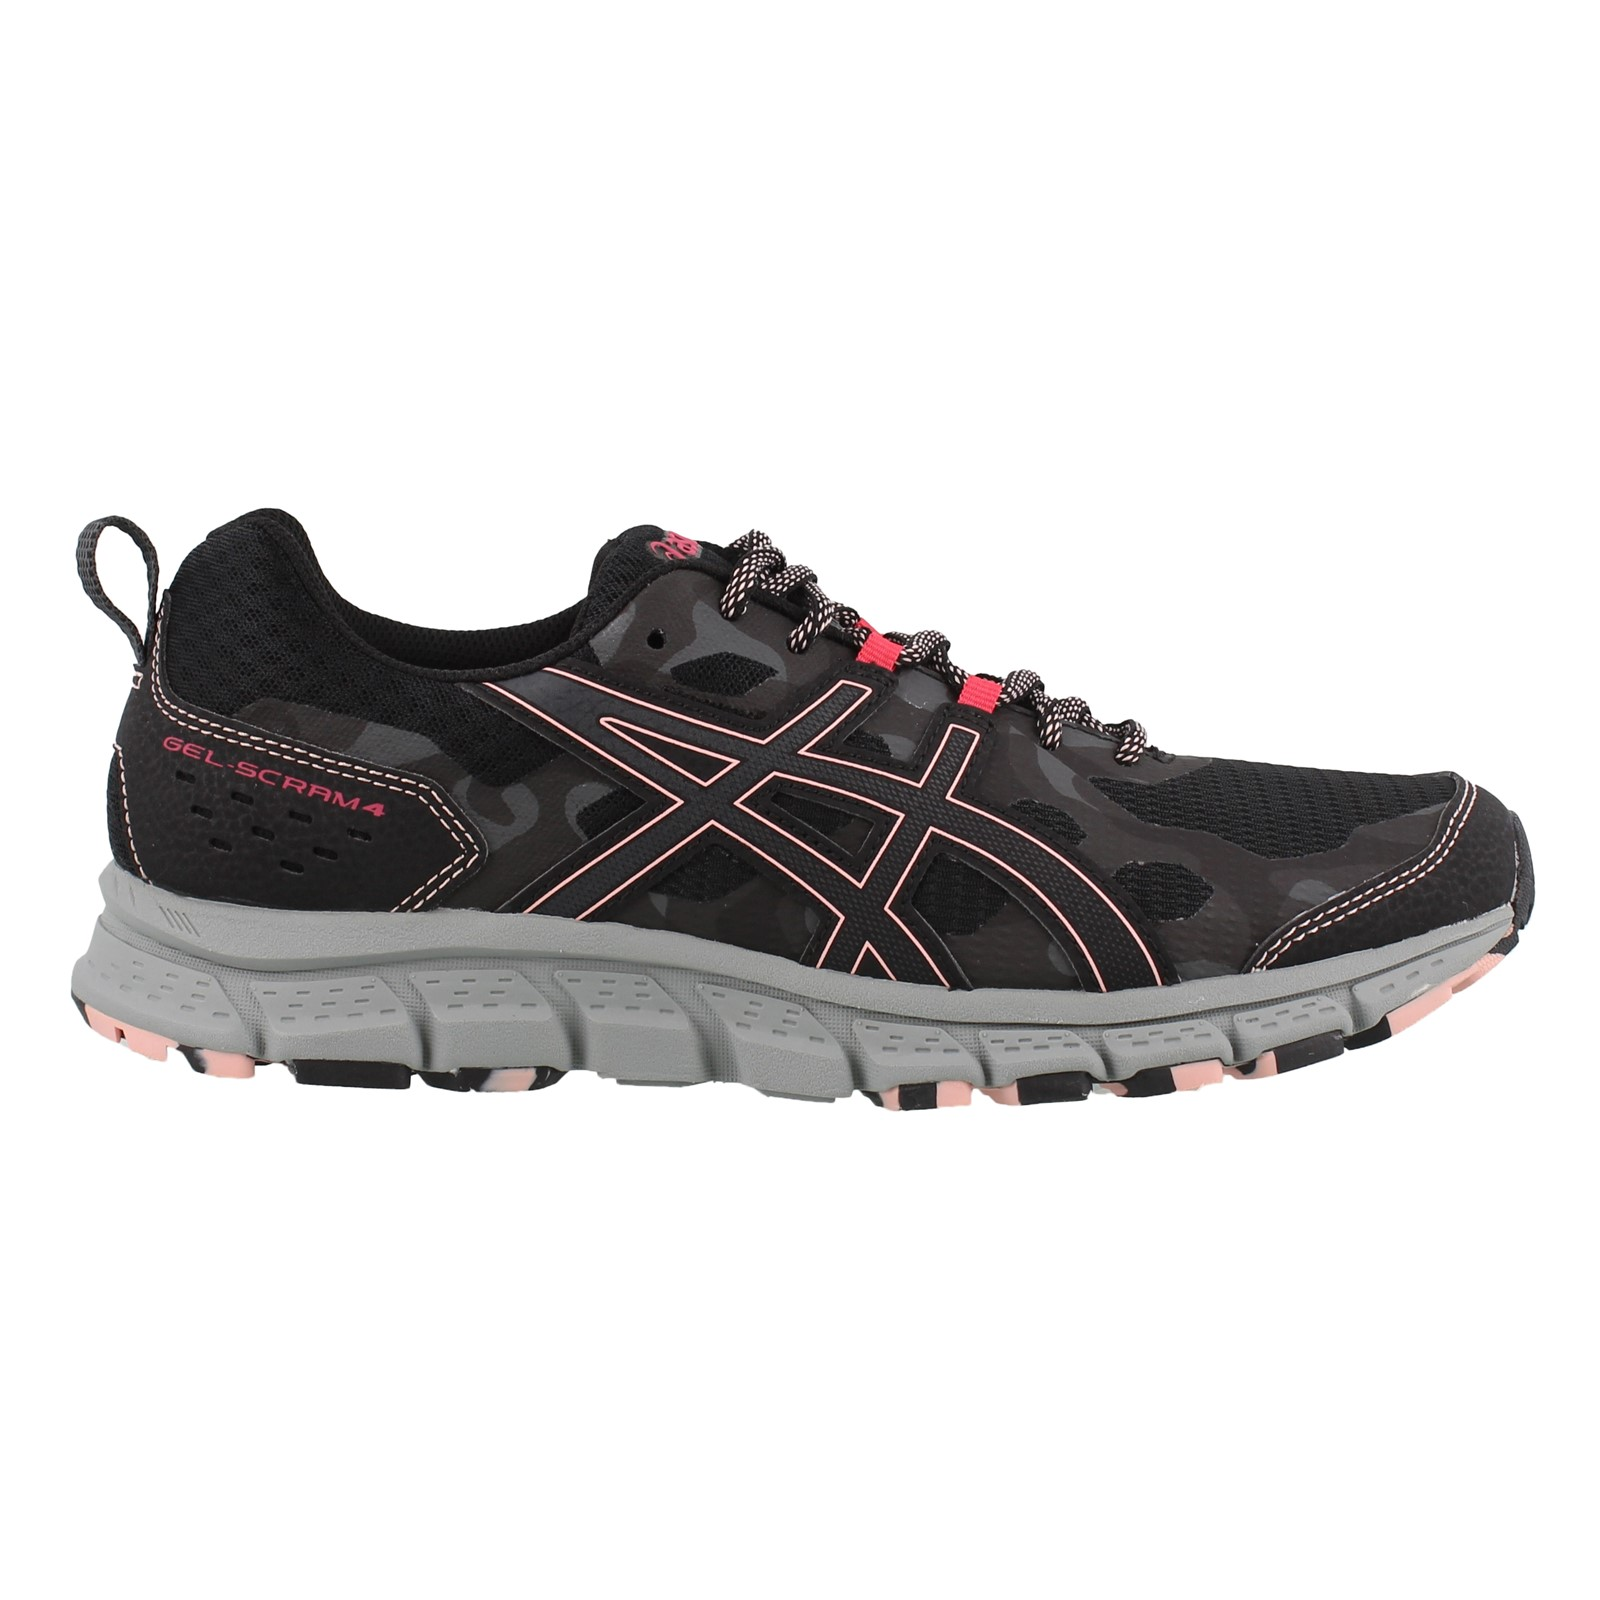 Women's Asics, Gel Scram 4 Trail Running Sneakers